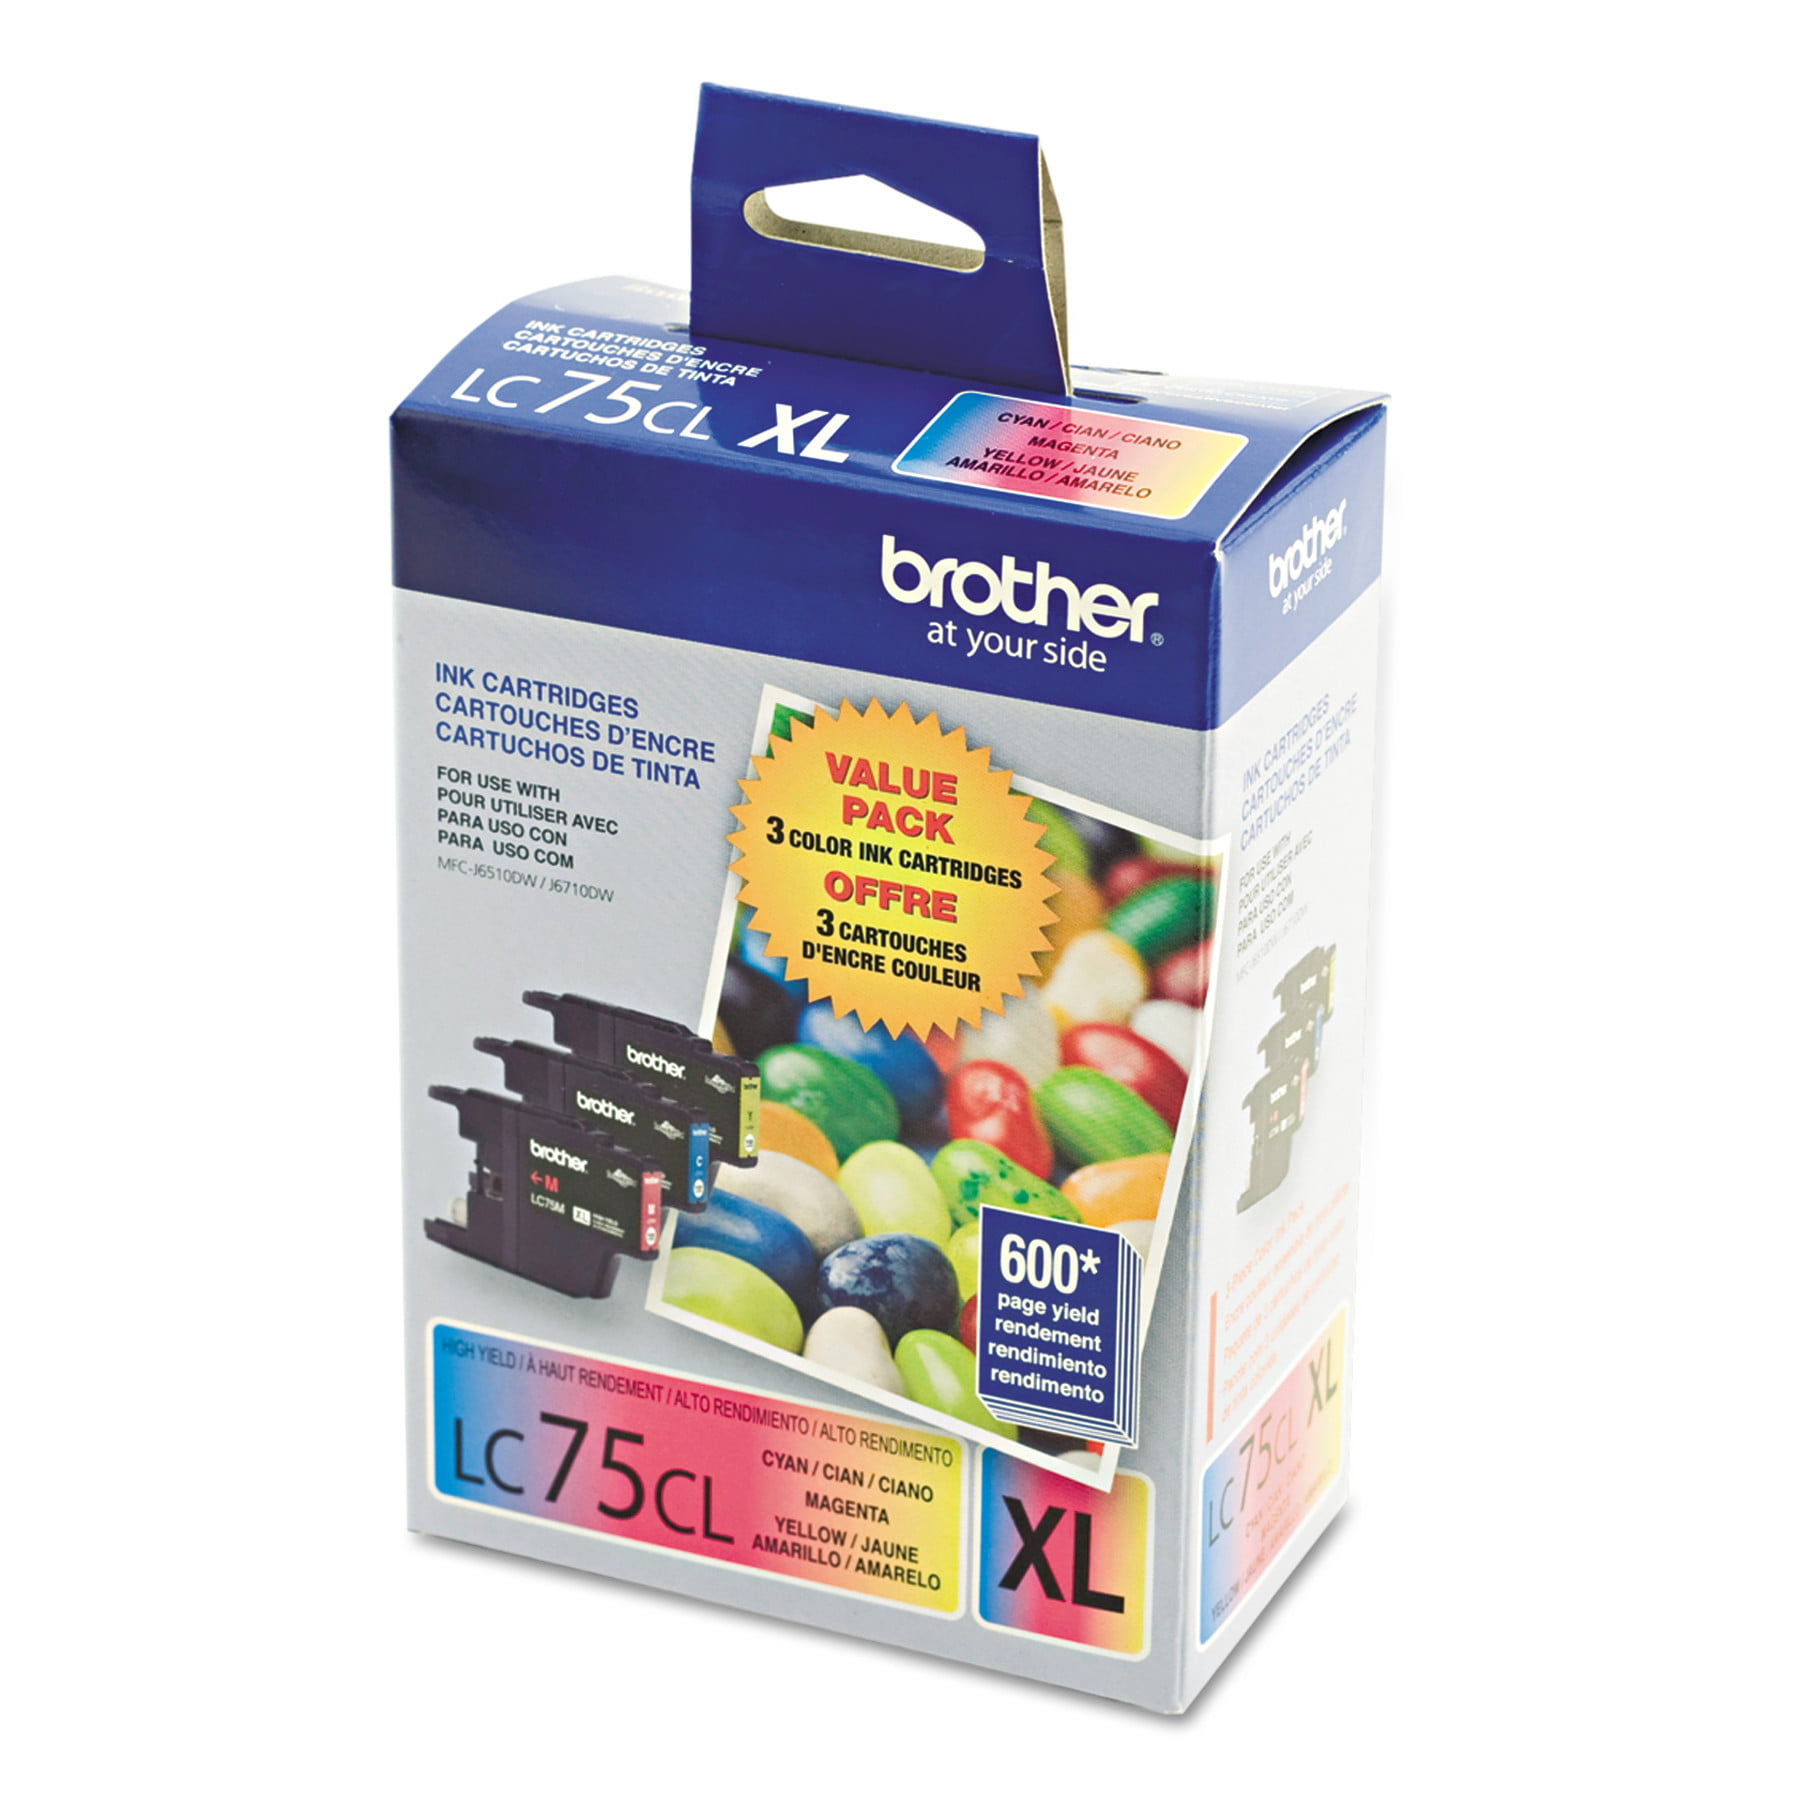 Brother Genuine High Yield Color Ink Cartridge LC753PKS Replacement 3 Pack